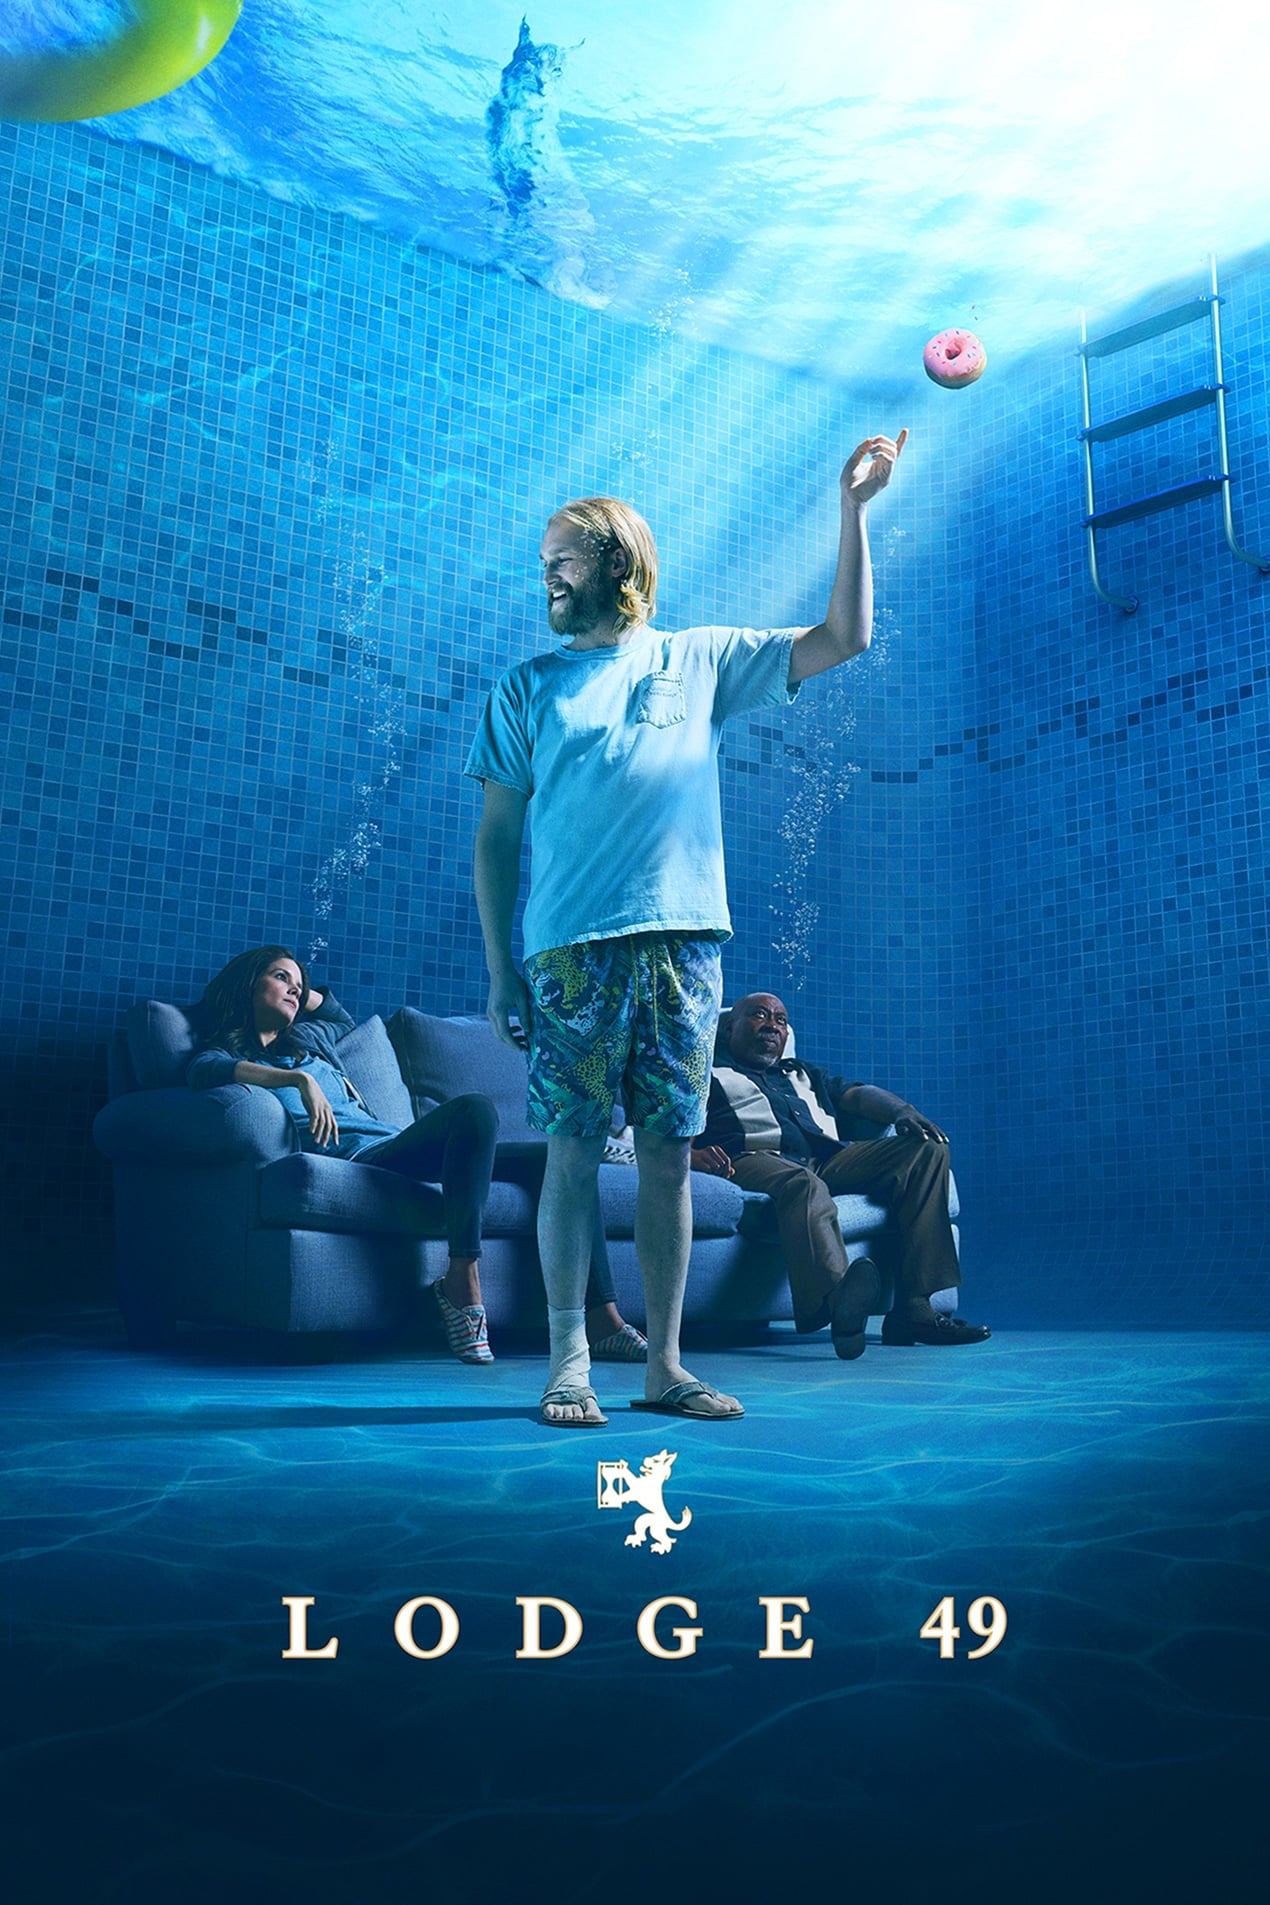 image for Lodge 49